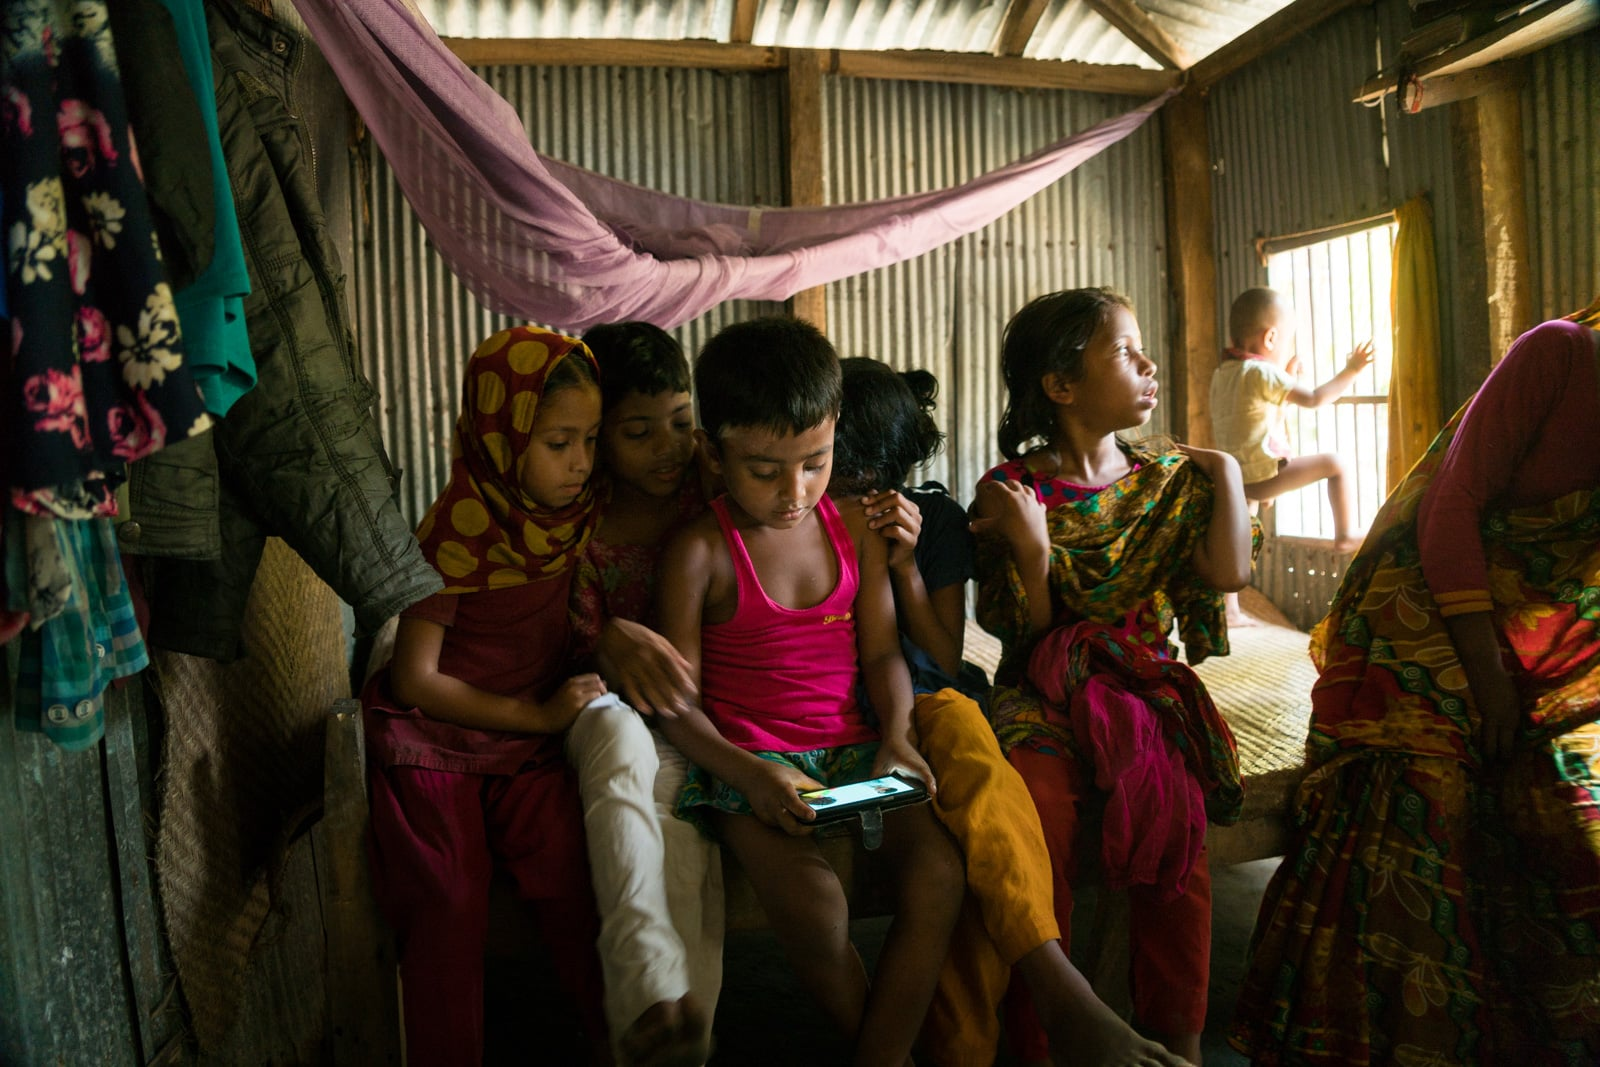 Travel guide to Nijhum Dwip, Bangladesh - Village children on a mobile phone - Lost With Purpose travel blog